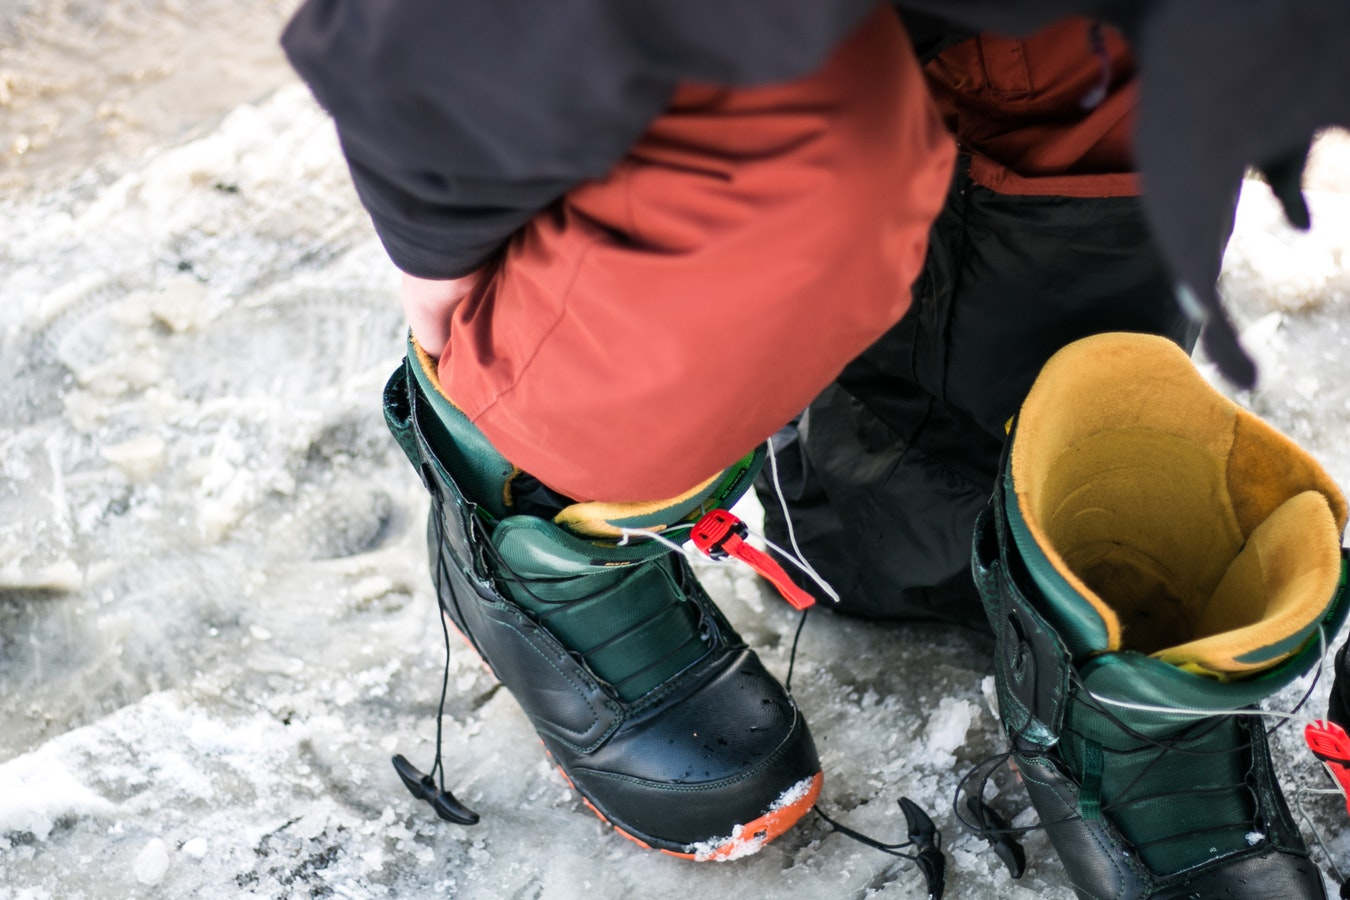 An In Depth Review of the Best Snowboard Boots of 2018